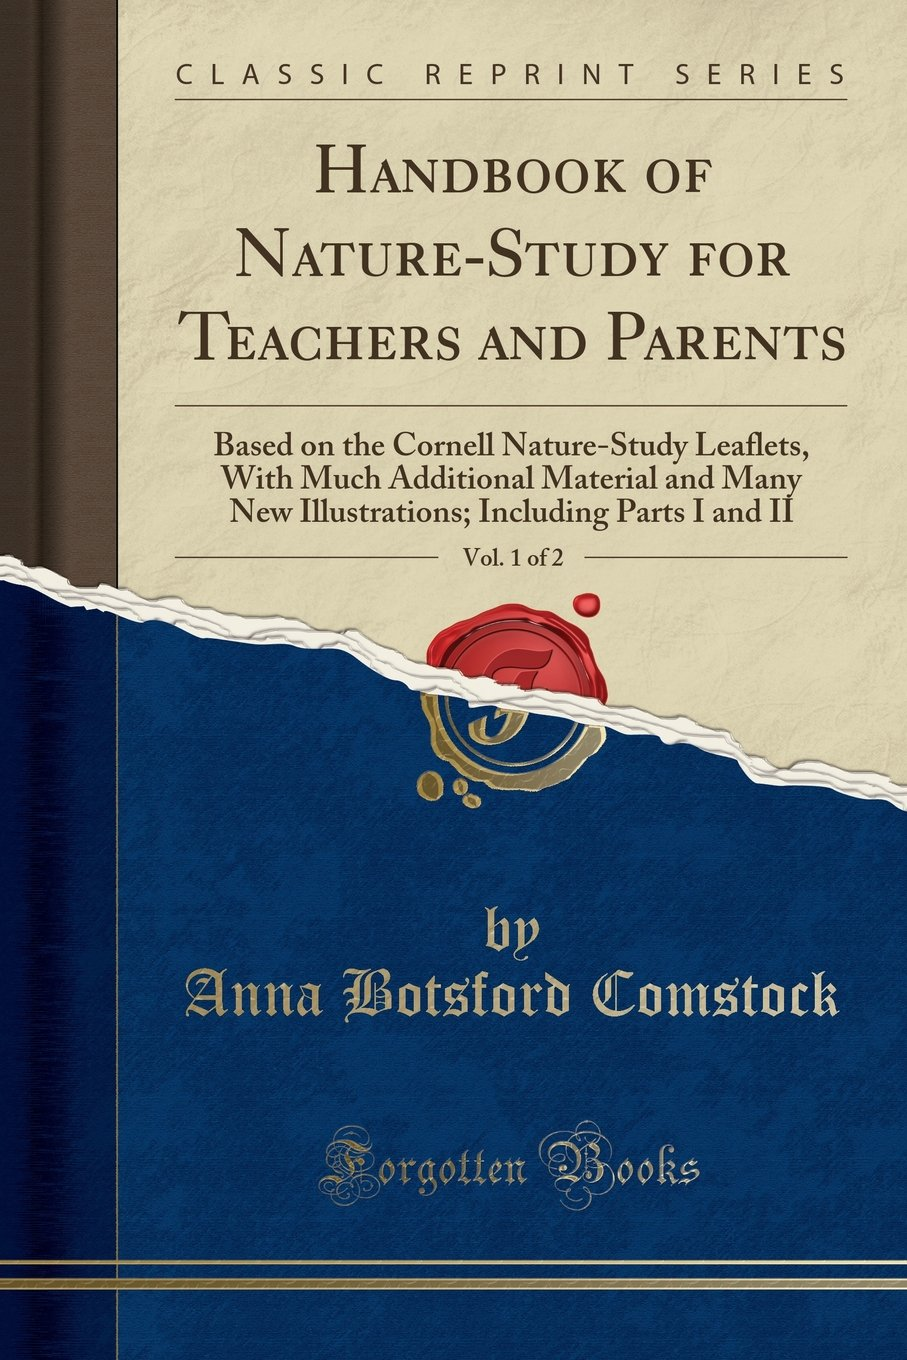 Download Handbook of Nature-Study for Teachers and Parents, Vol. 1 of 2: Based on the Cornell Nature-Study Leaflets, With Much Additional Material and Many New ... Including Parts I and II (Classic Reprint) PDF